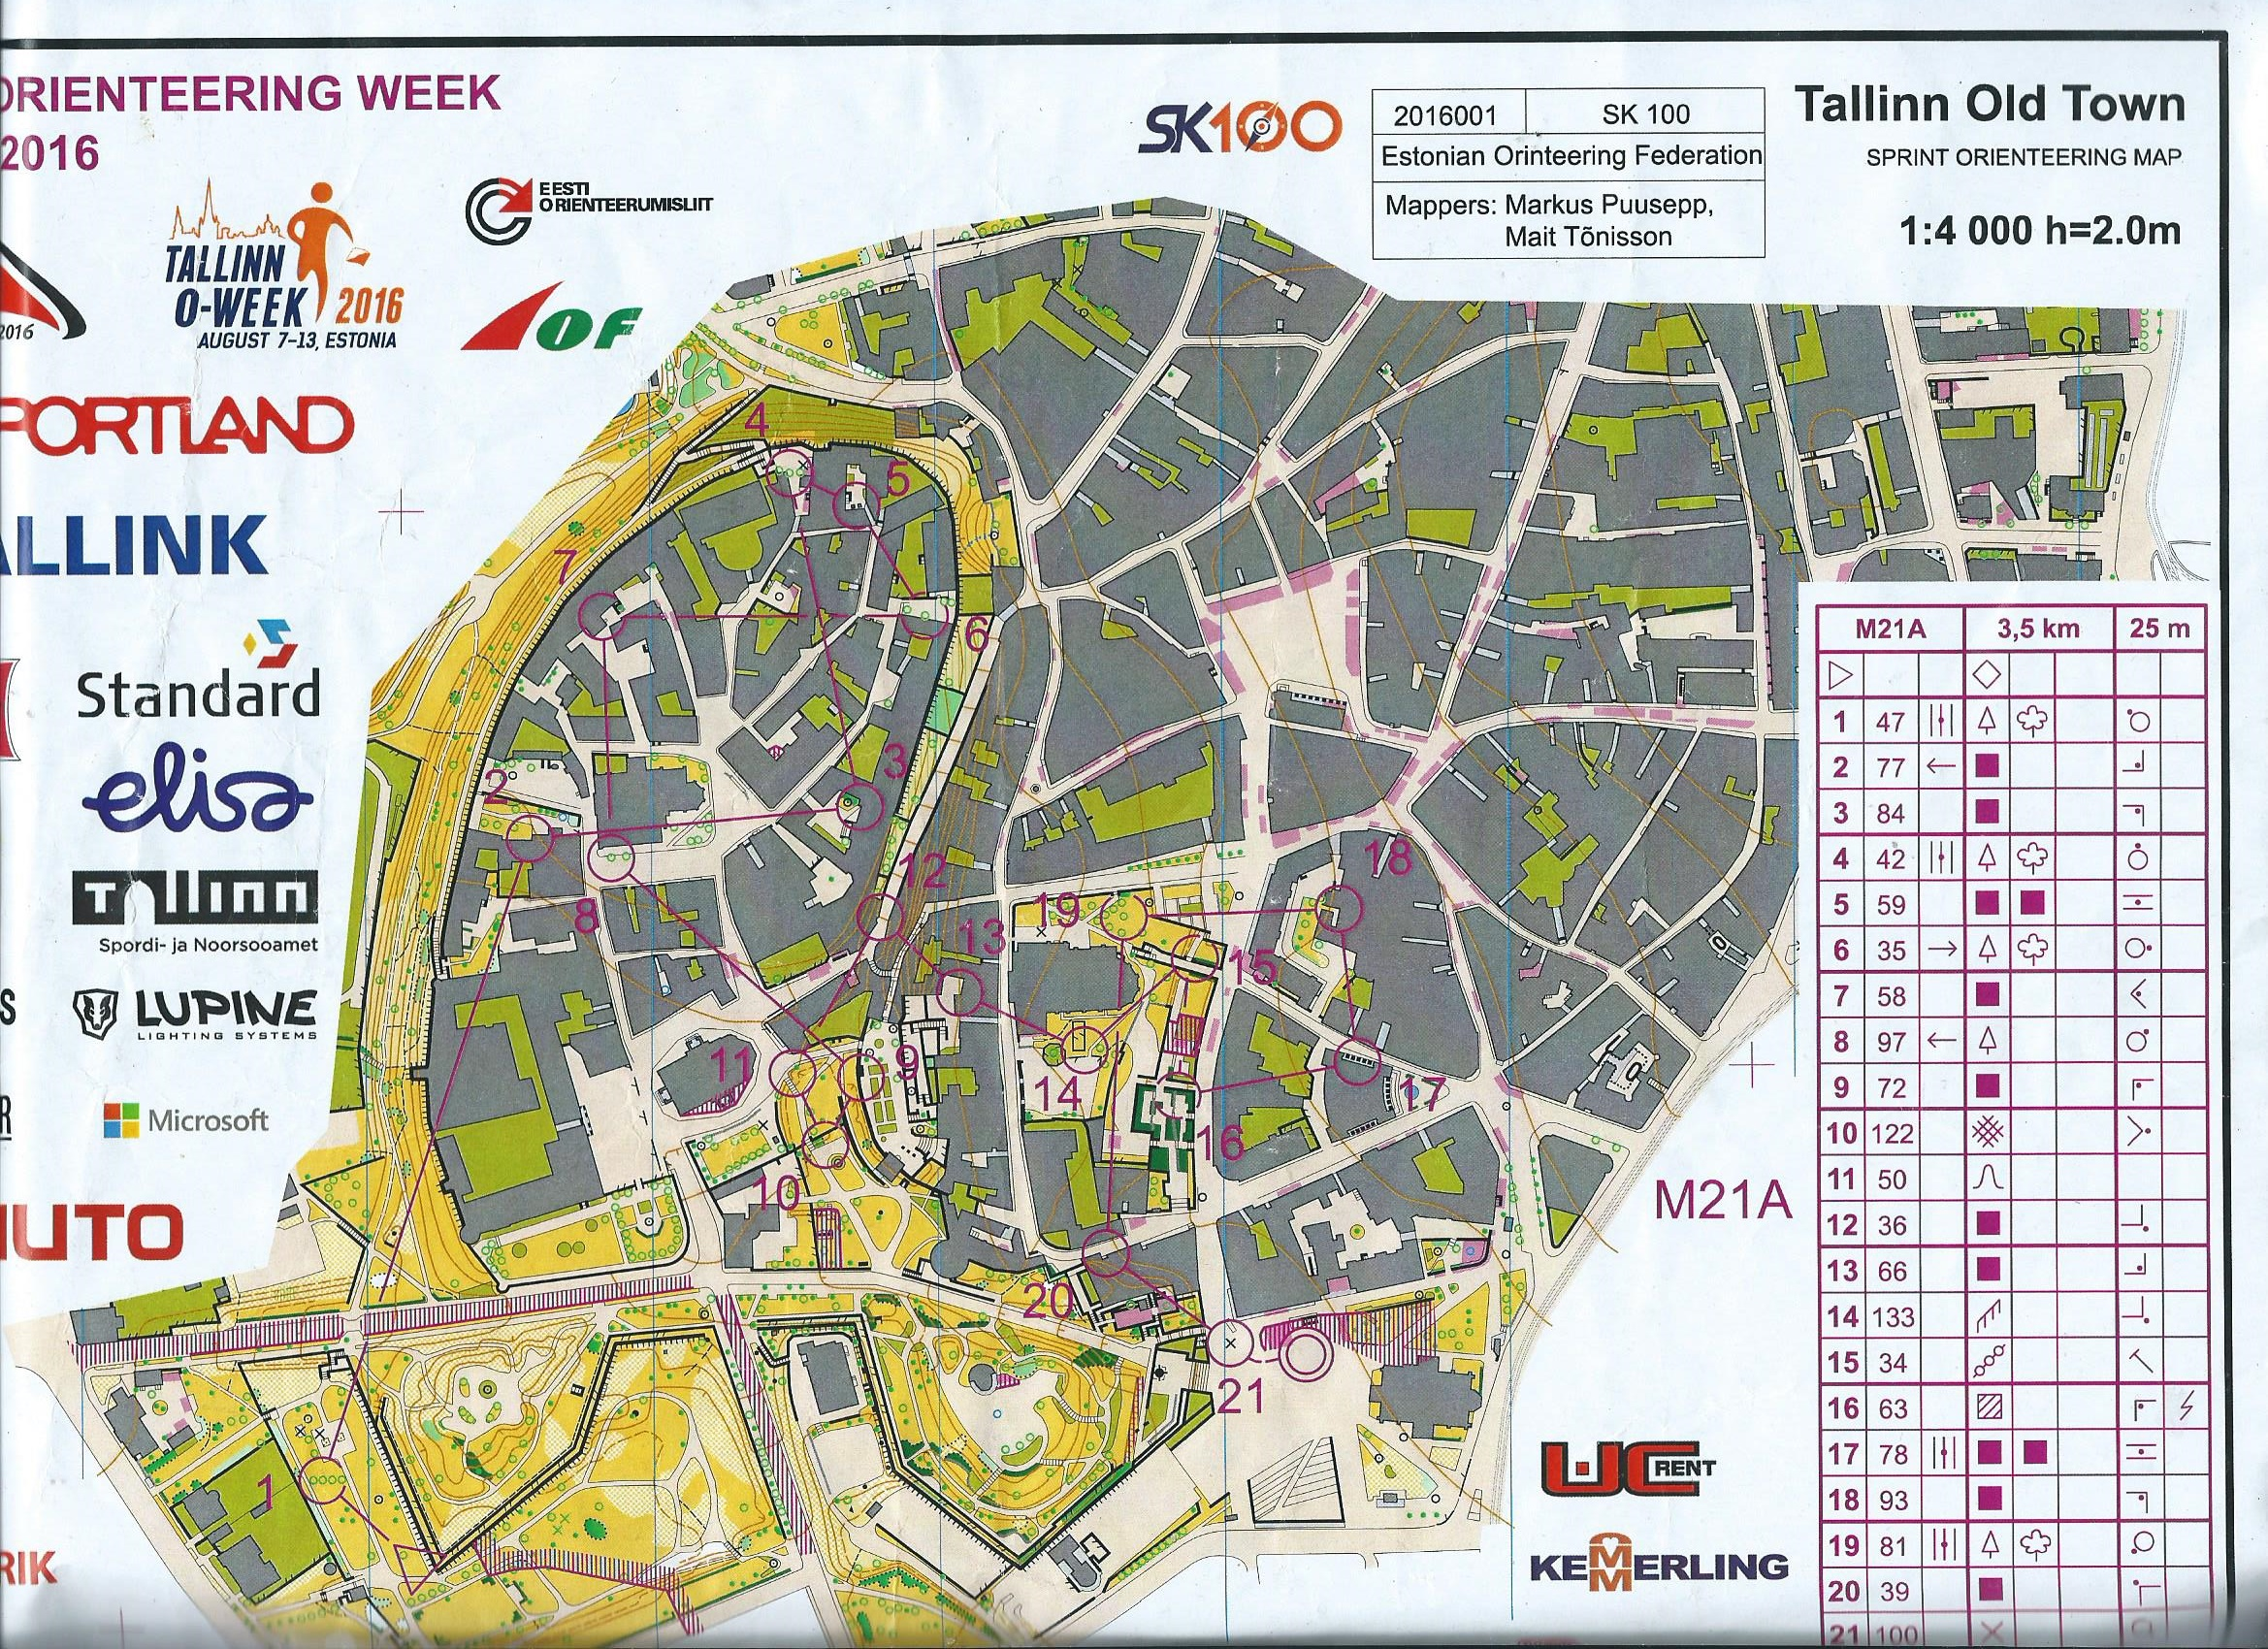 Tallinn o week e2 august 8th 2016 orienteering map from karol galicz view map without route gumiabroncs Gallery